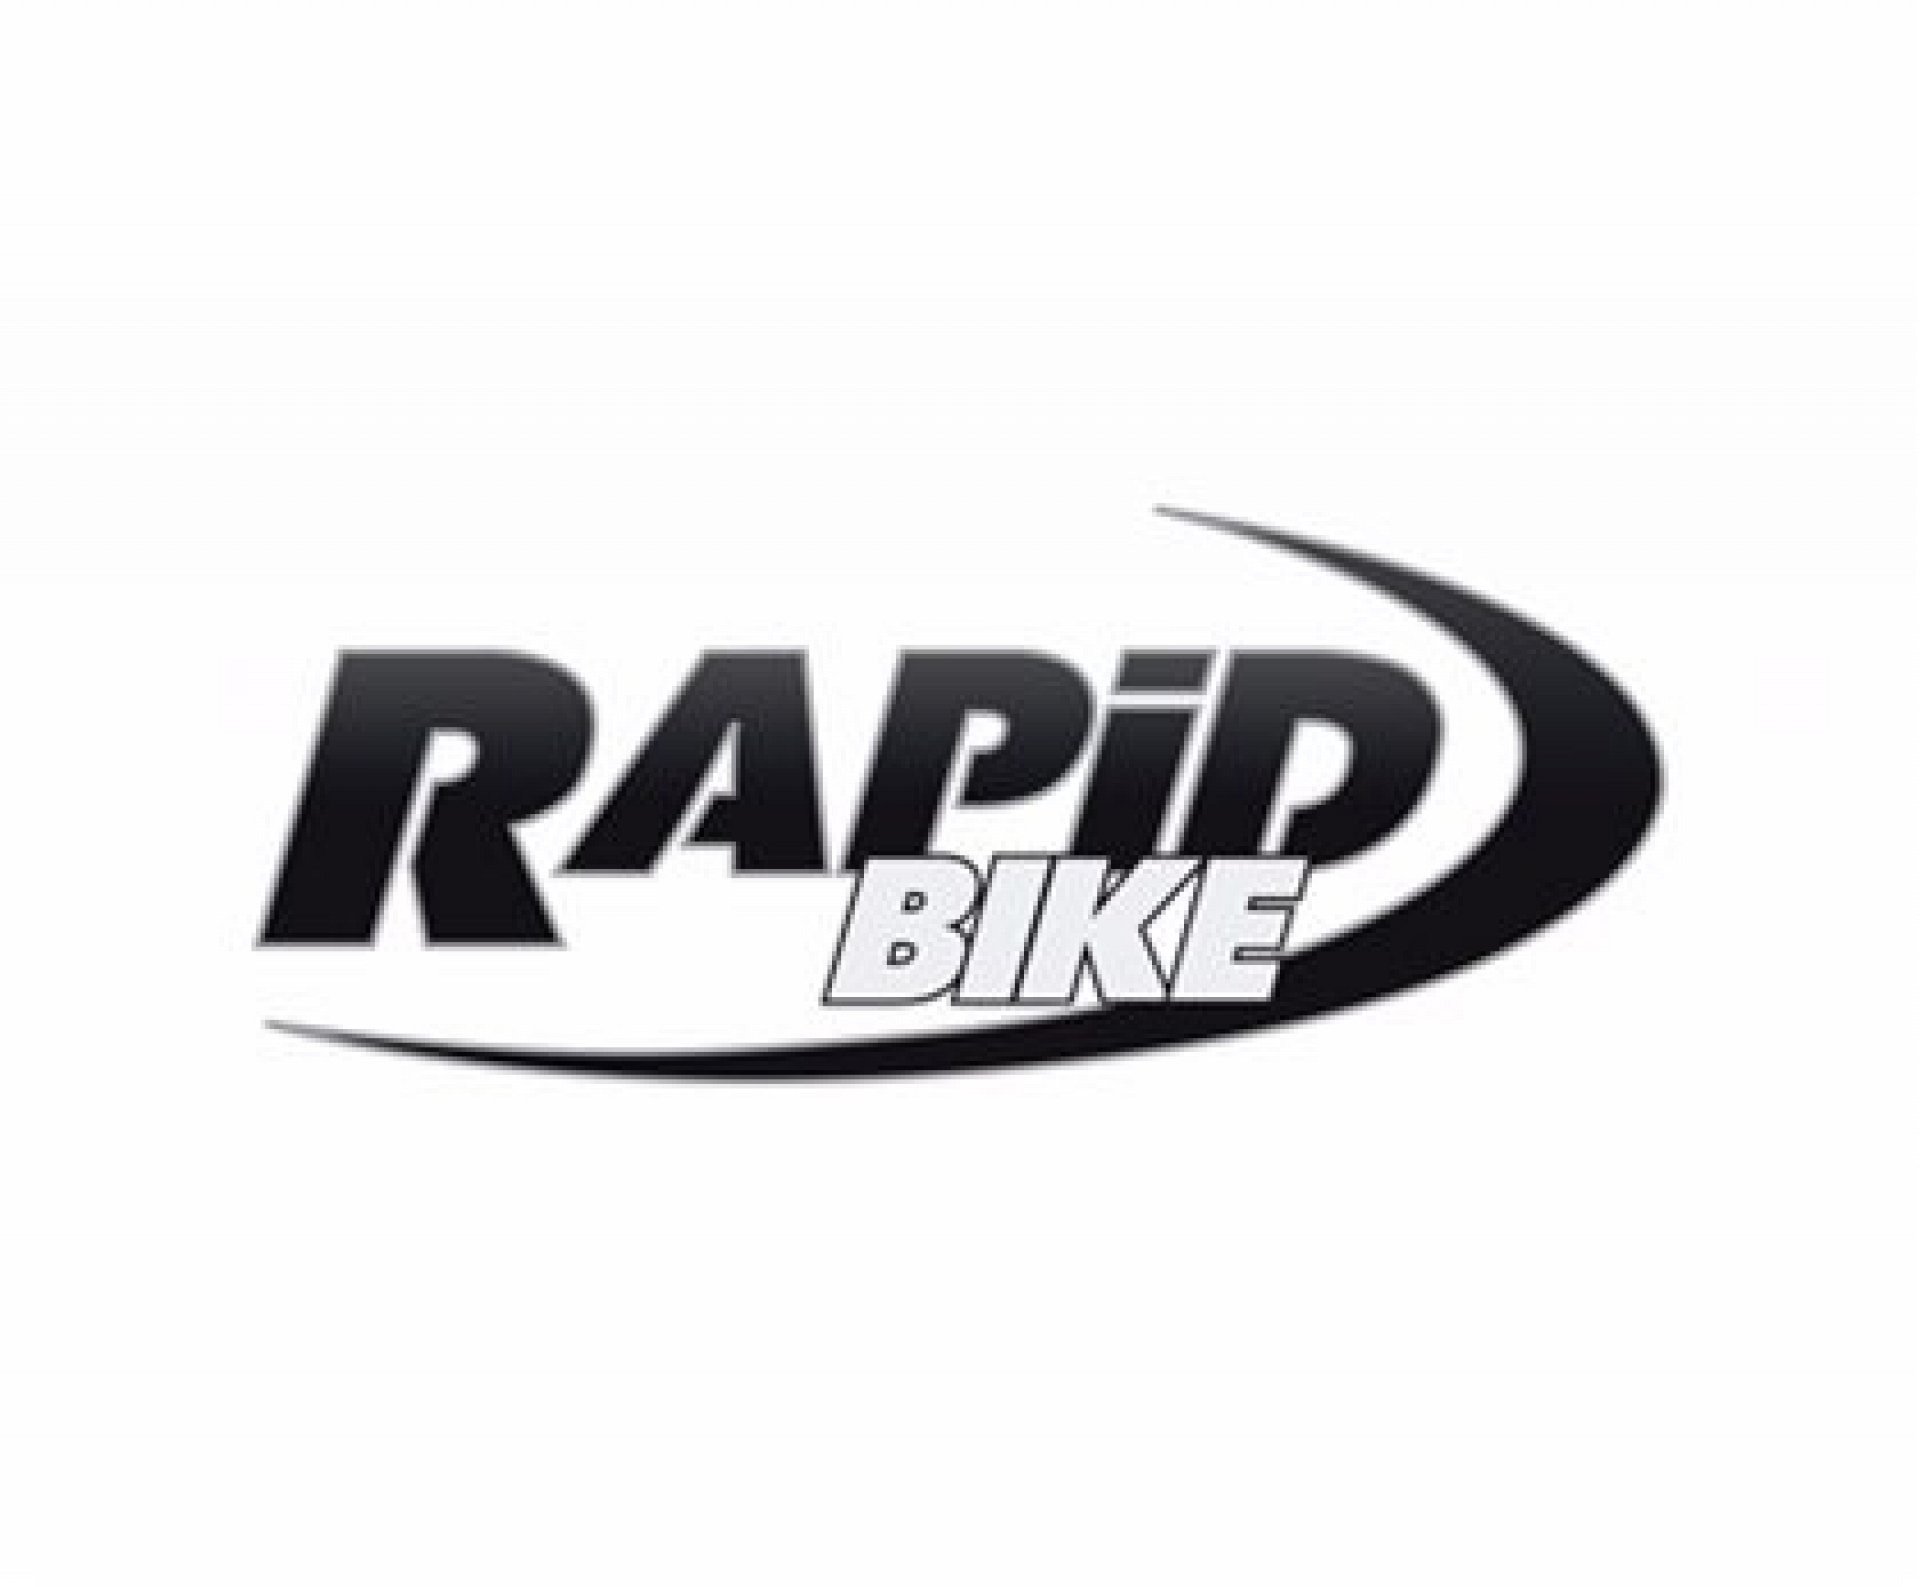 Rapid Bike Dealer